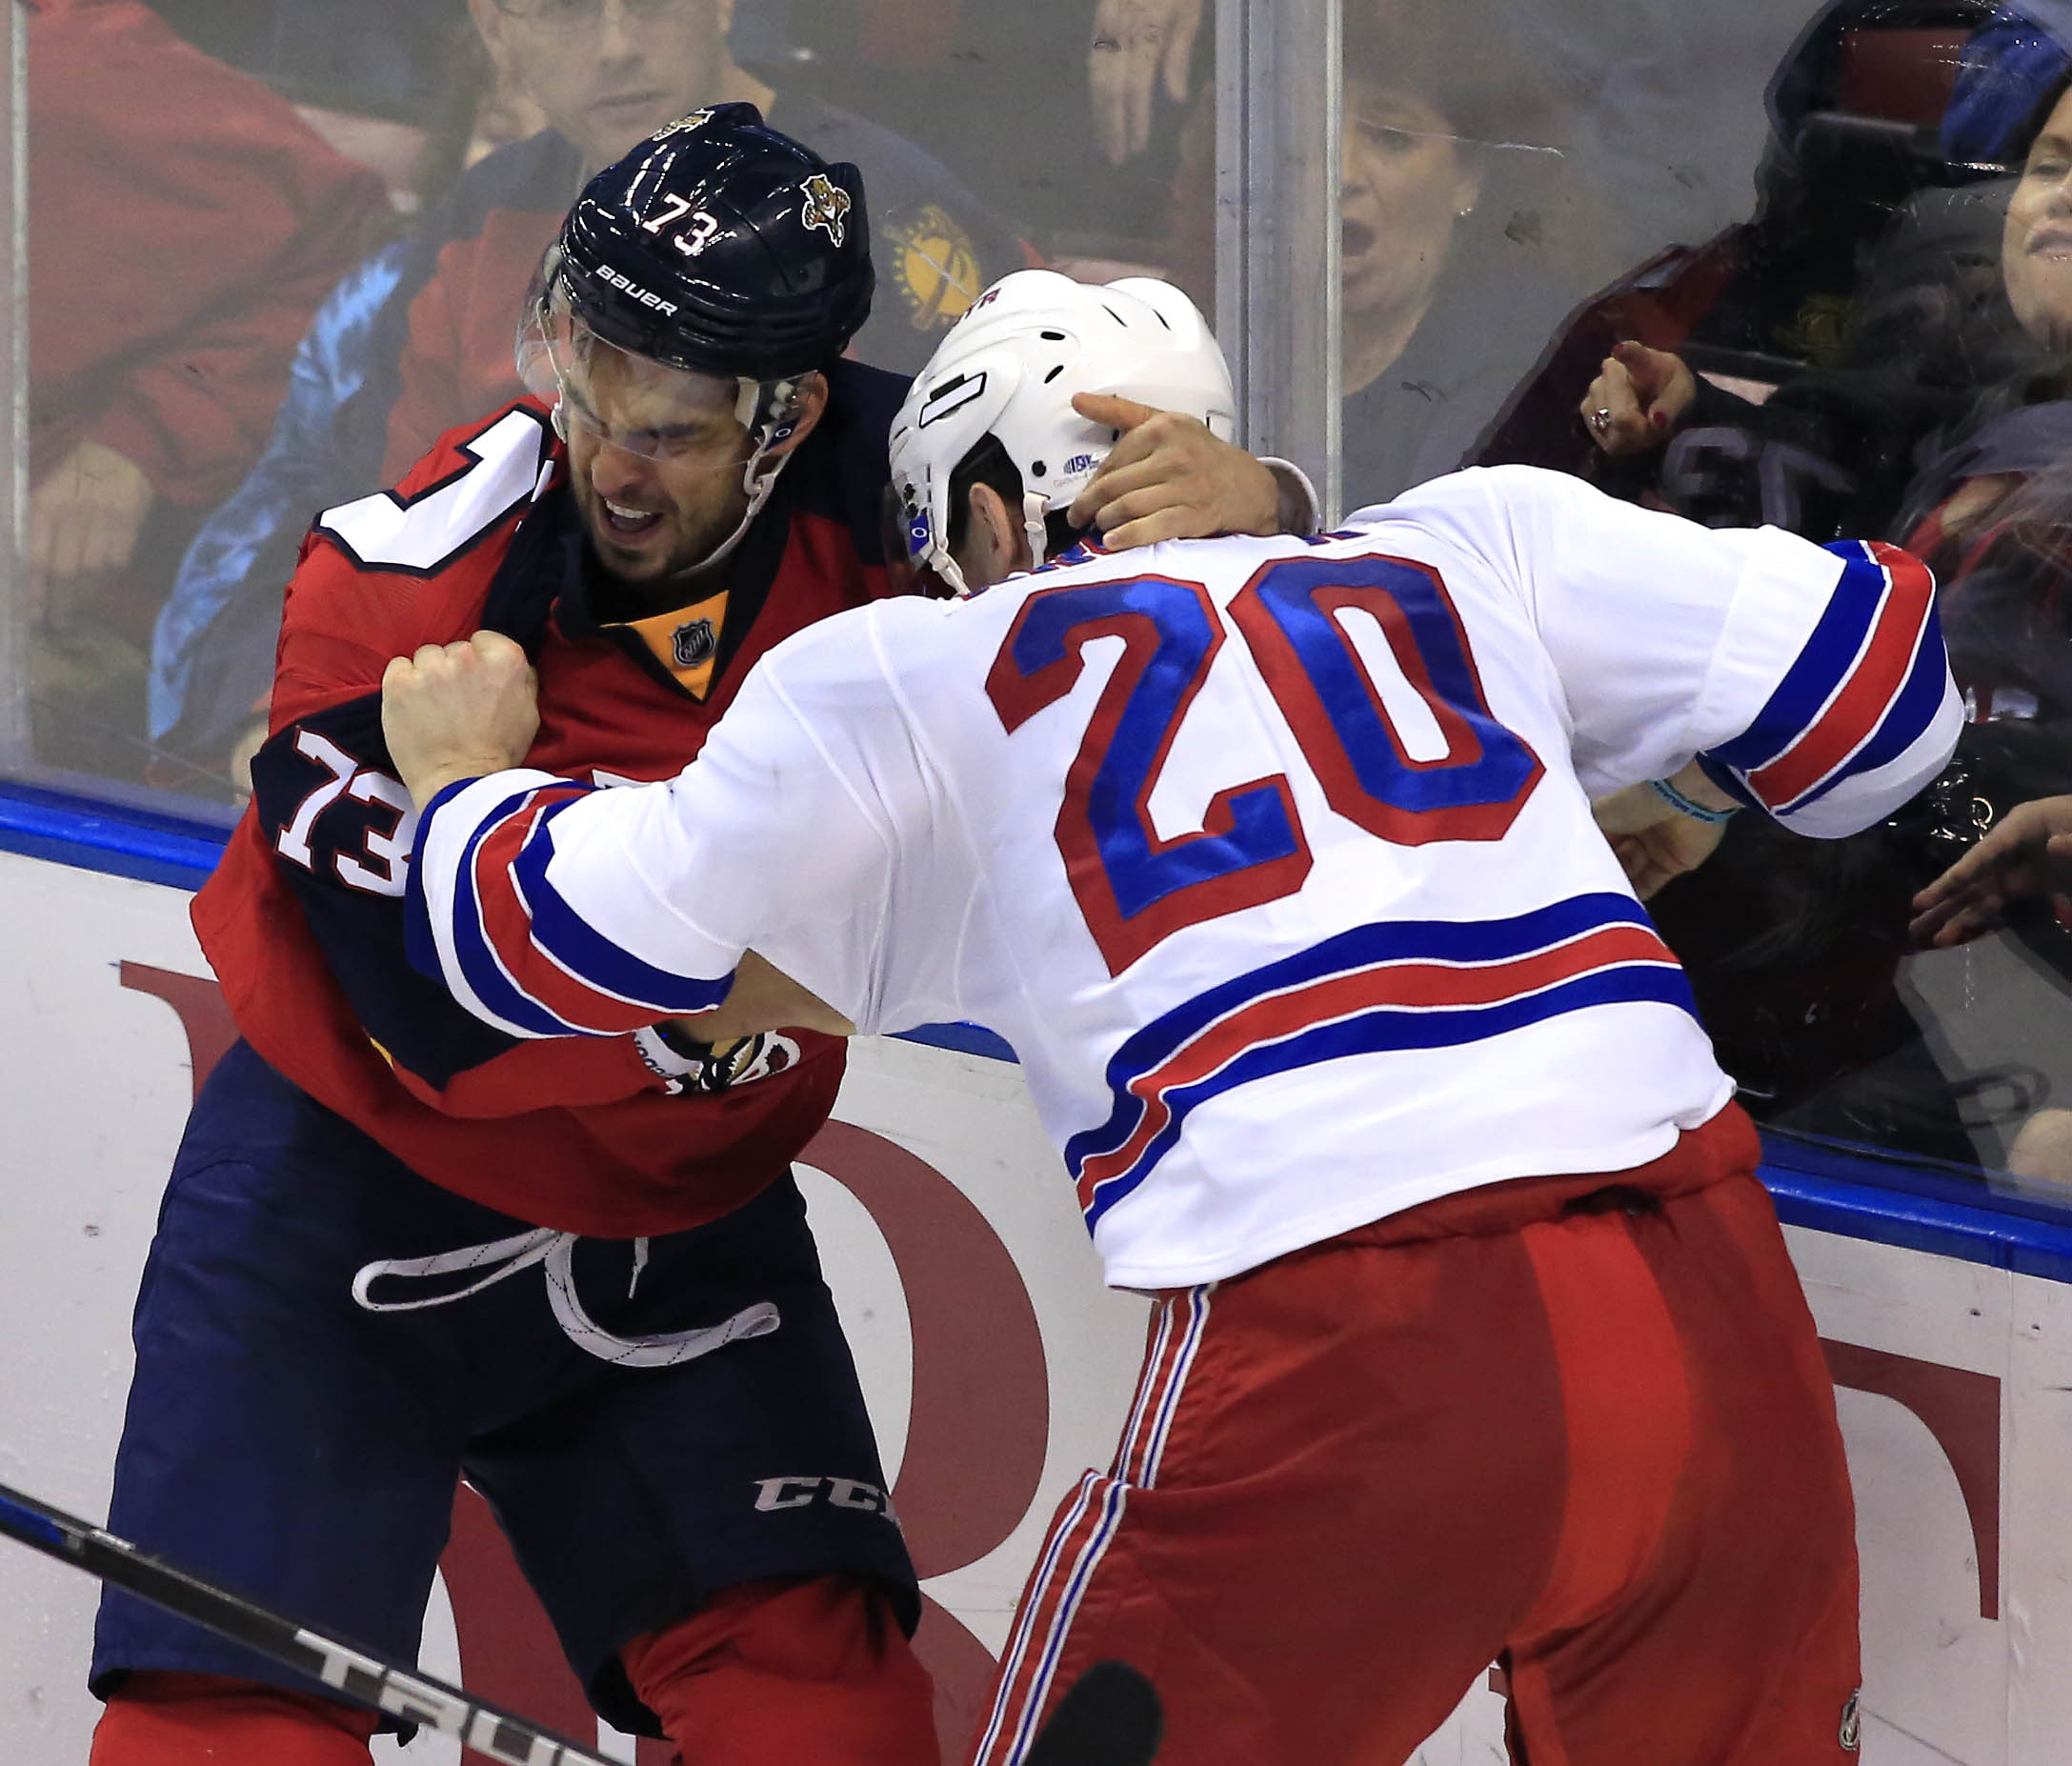 Here is a picture of Pirri fighting, so that everyone will love him more.